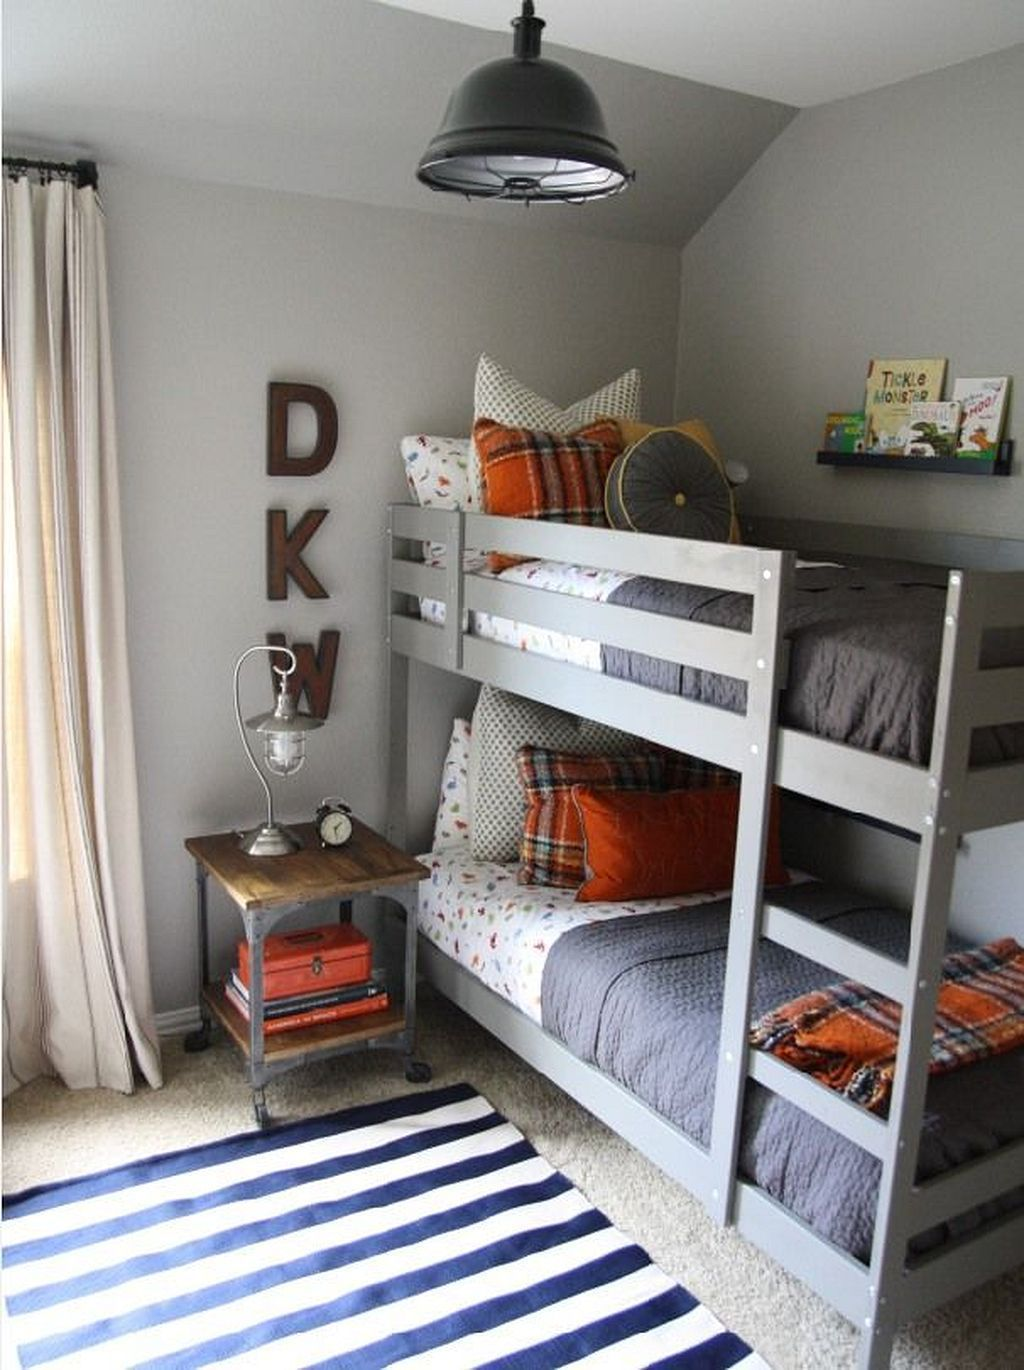 51 Bunk Bed For Boys Room Ideas 37 Bunk Beds For Boys Room Bunk Beds Small Room Bunk Beds Boys